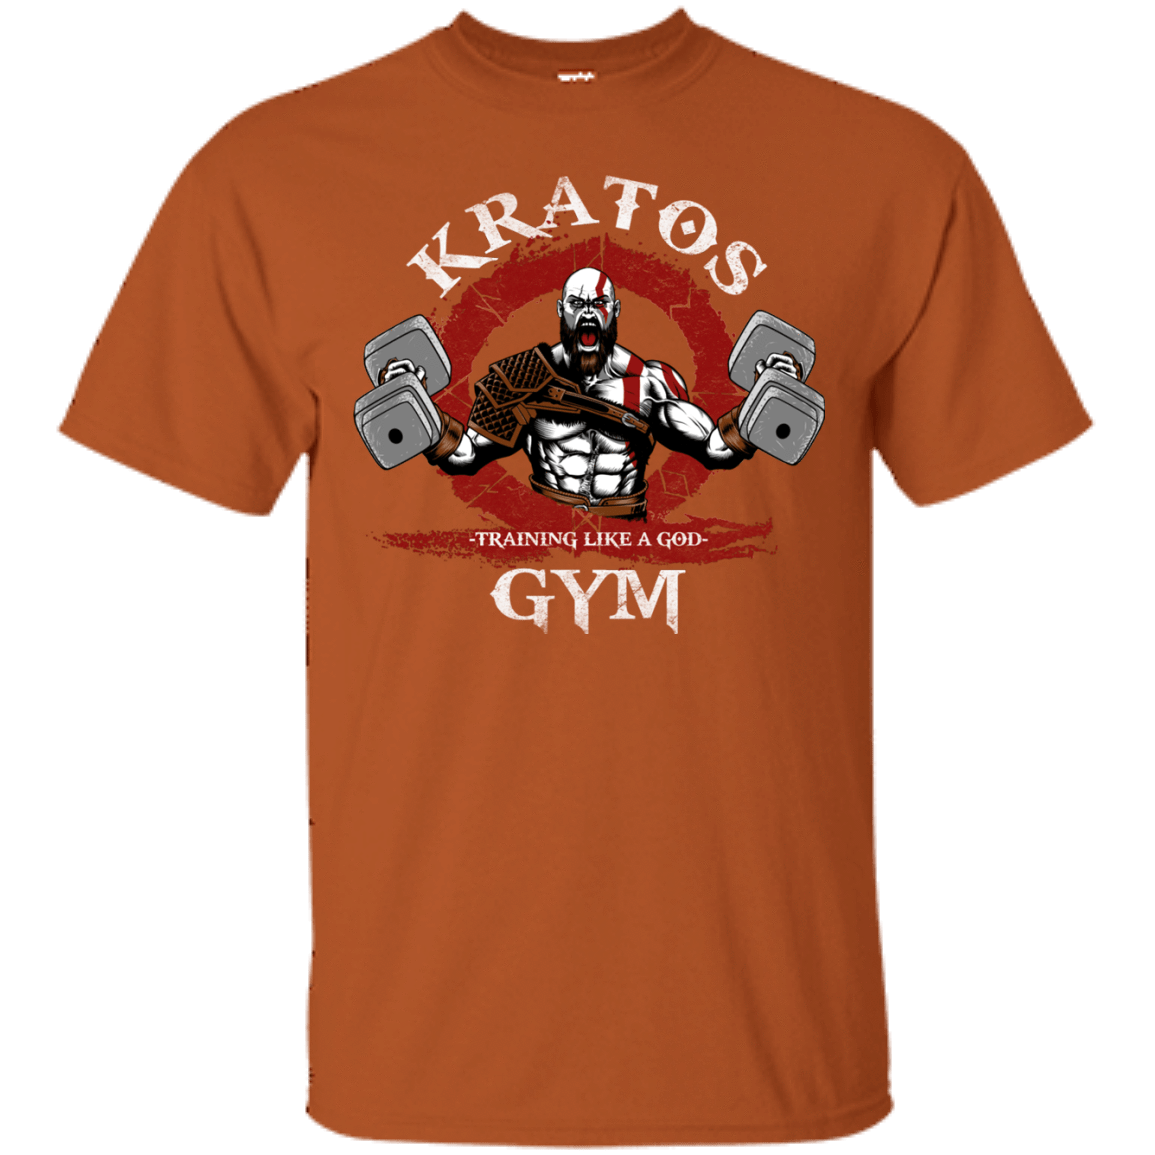 Kratos Gym T-Shirt